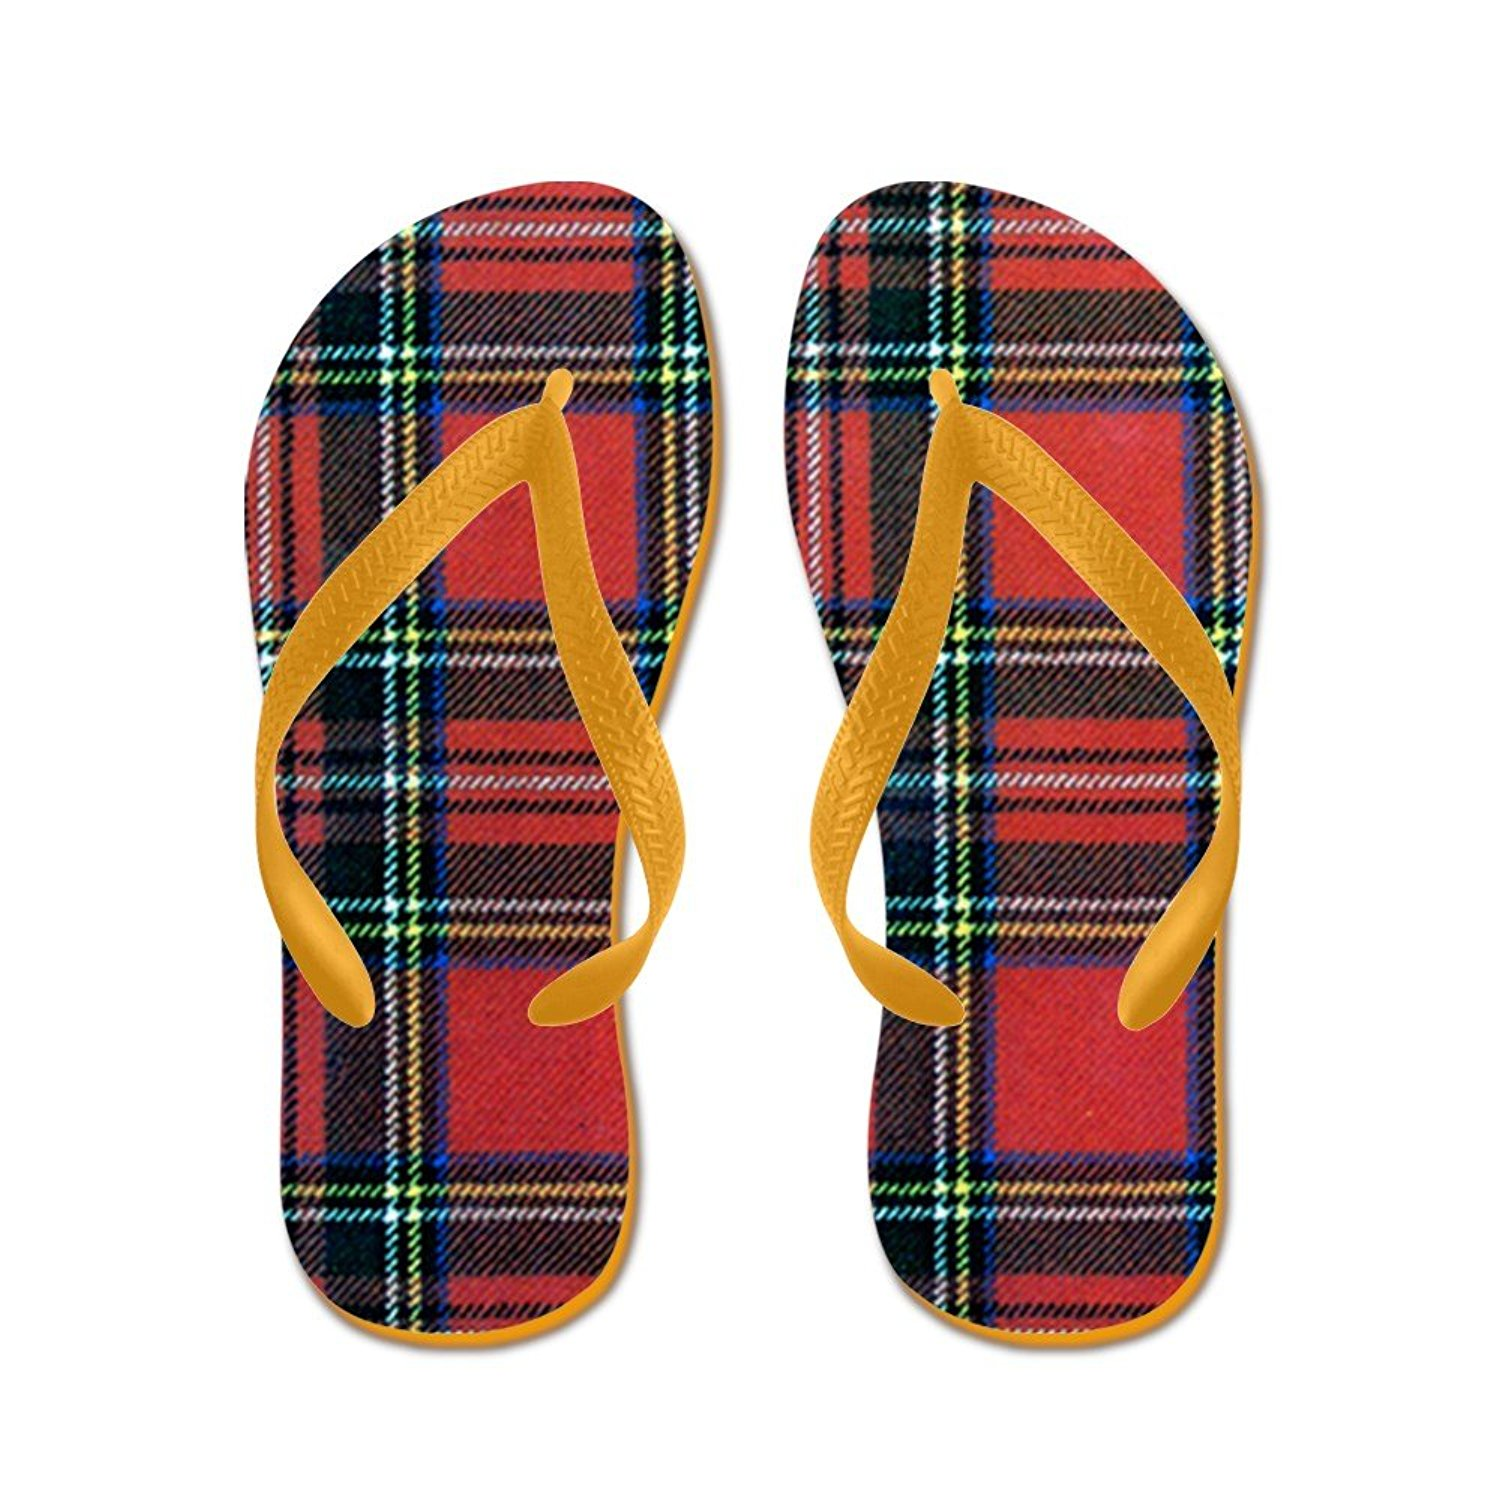 689a1ef44 Get Quotations · CafePress Royal Stewart Tartan - Flip Flops